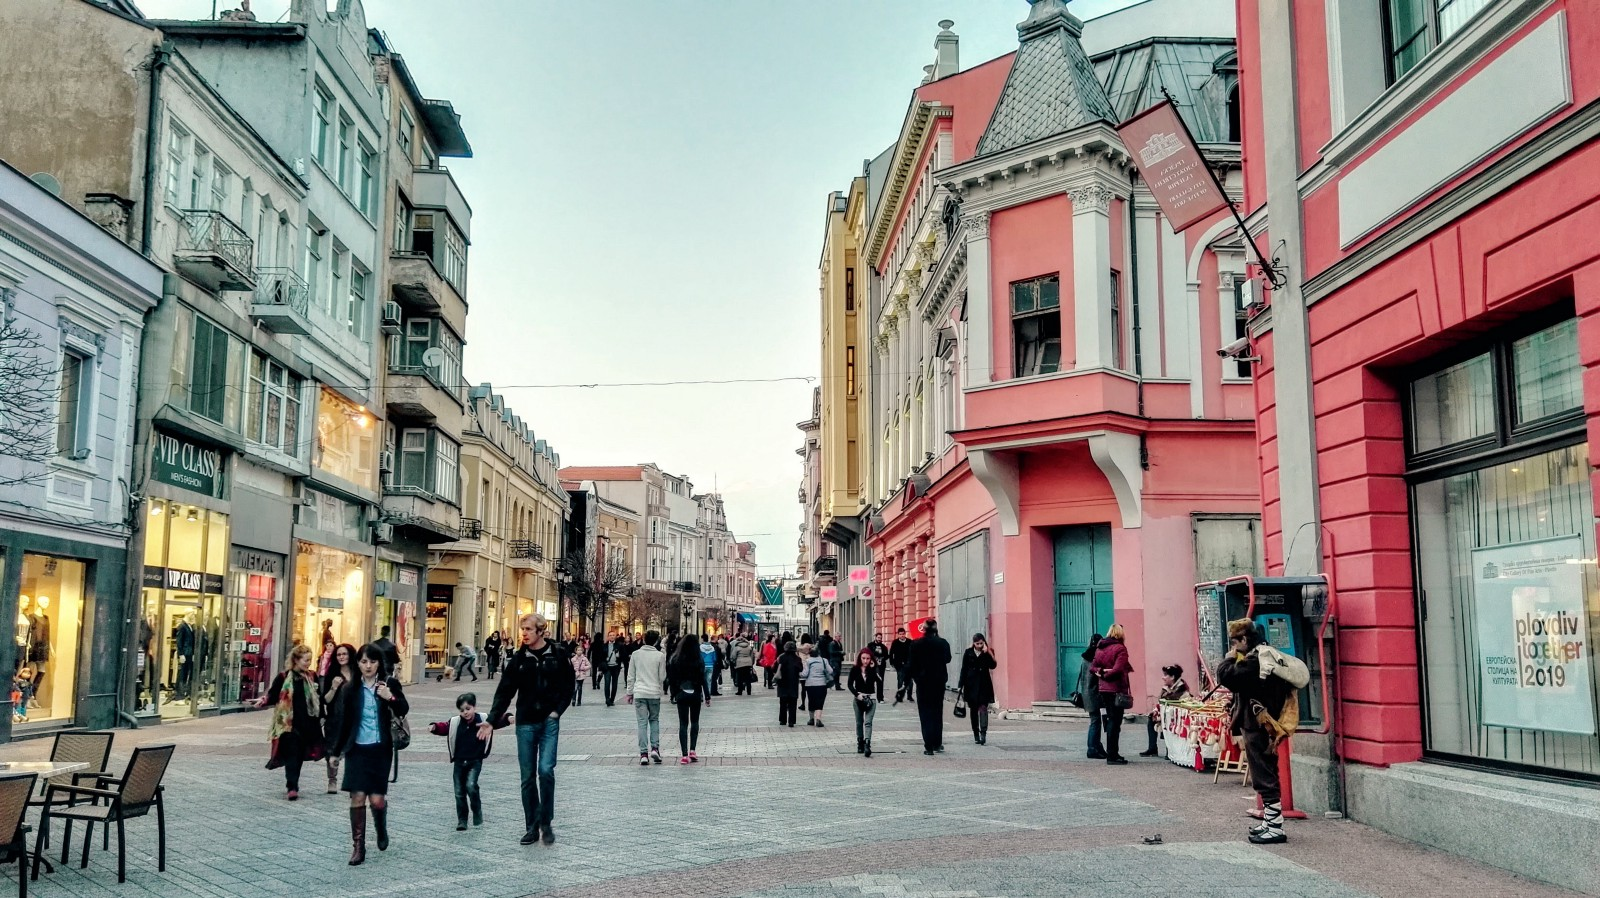 About Plovdiv